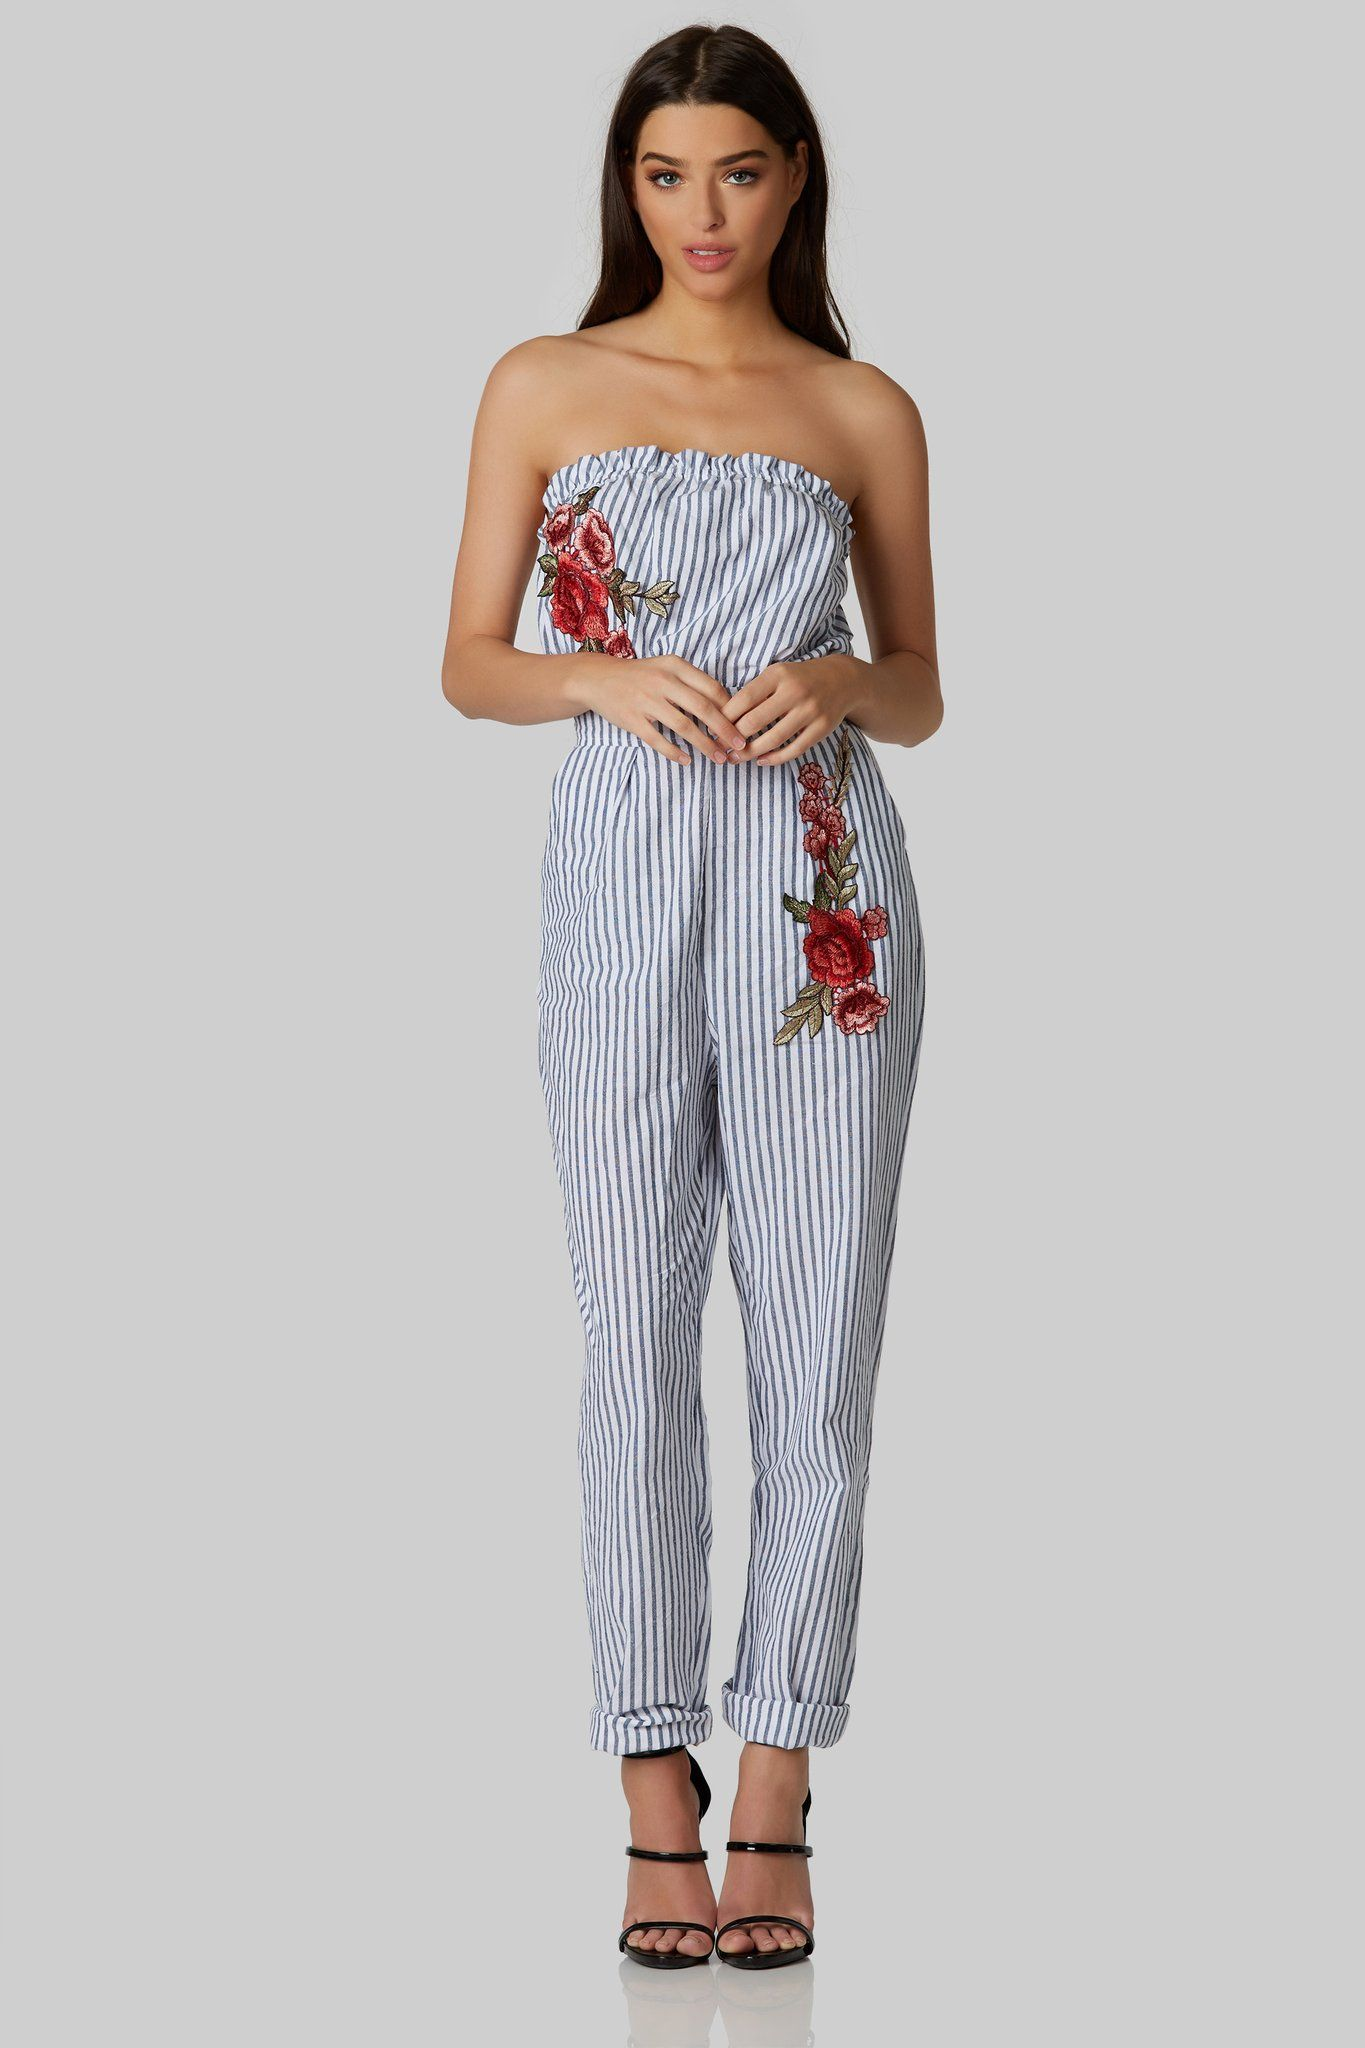 Will you be my love jumpsuit s t y l e pinterest